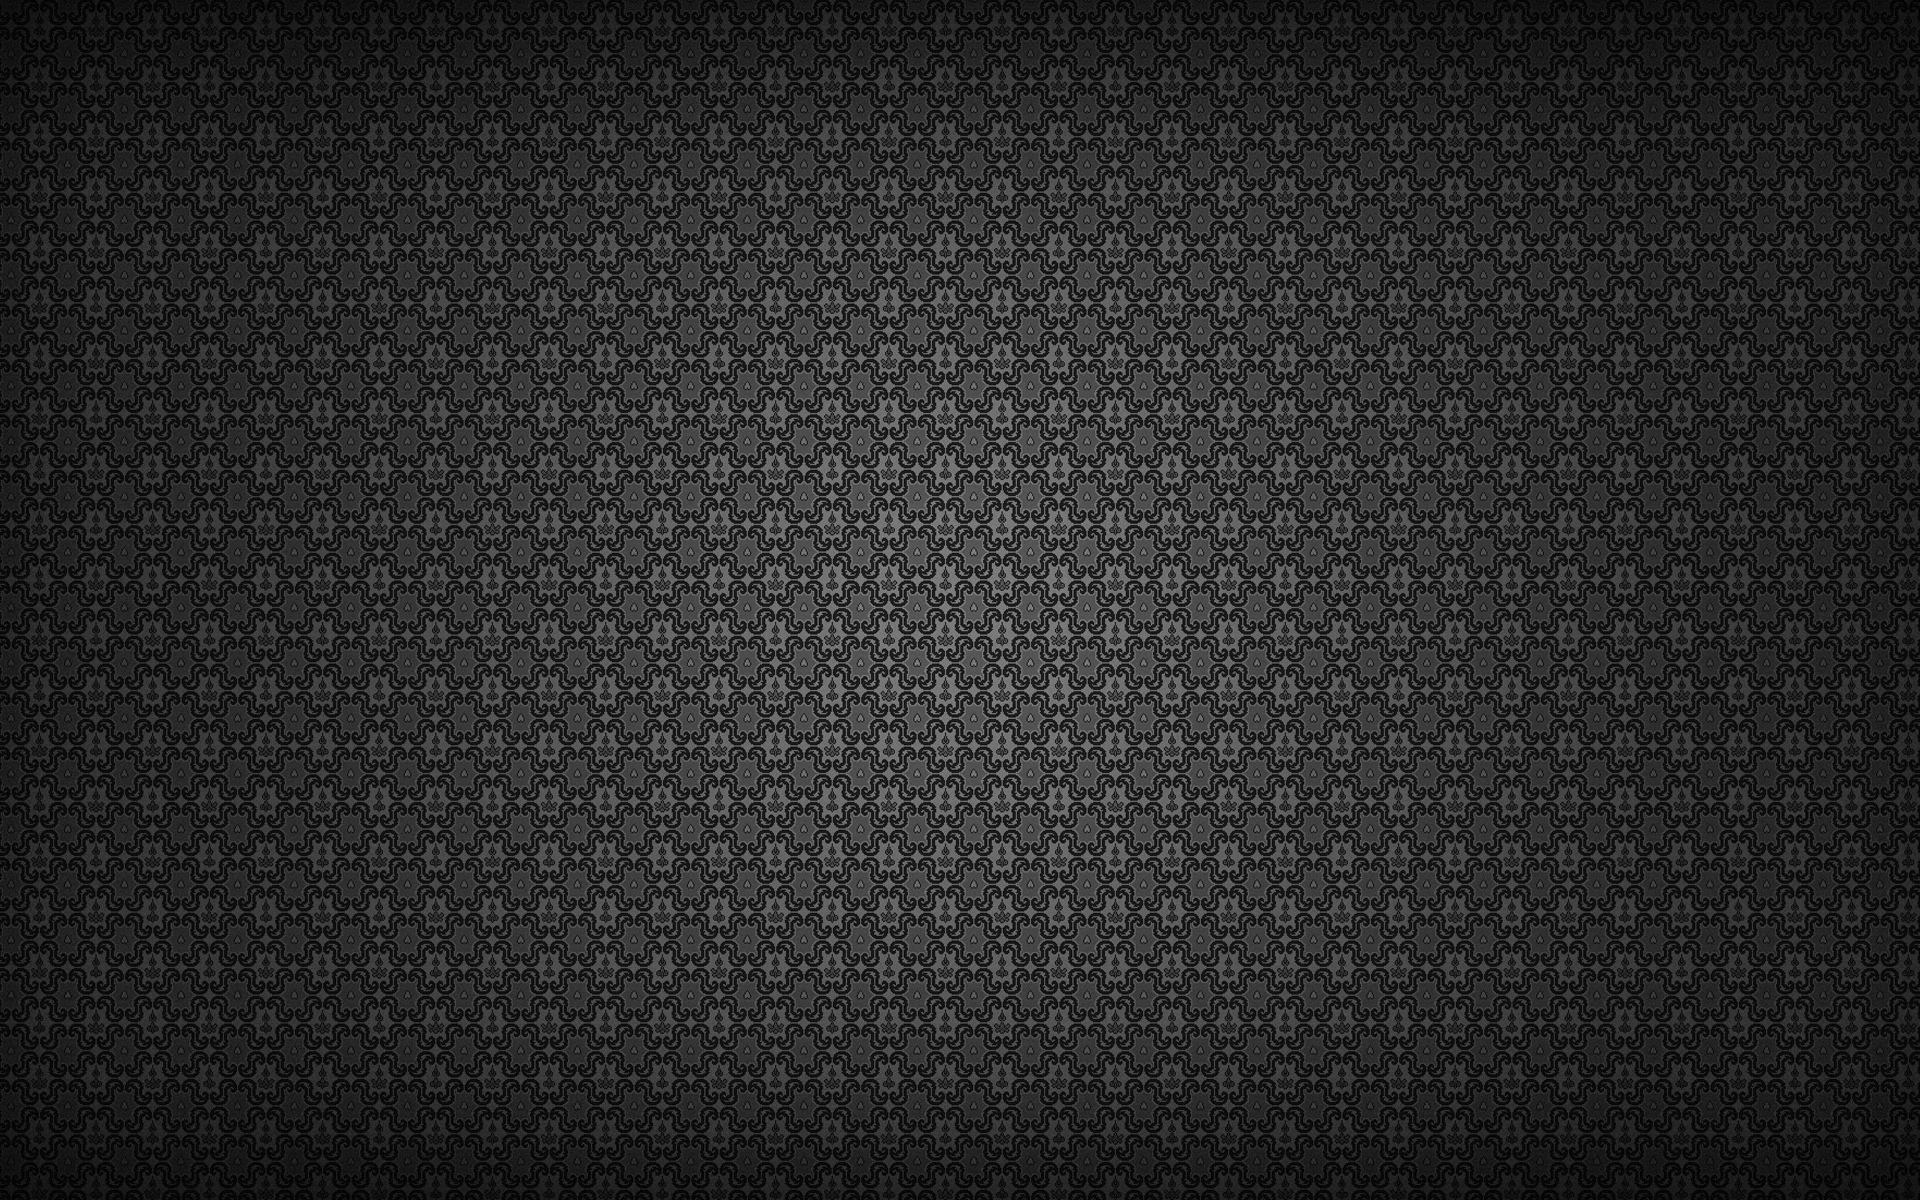 textured backgrounds 18620